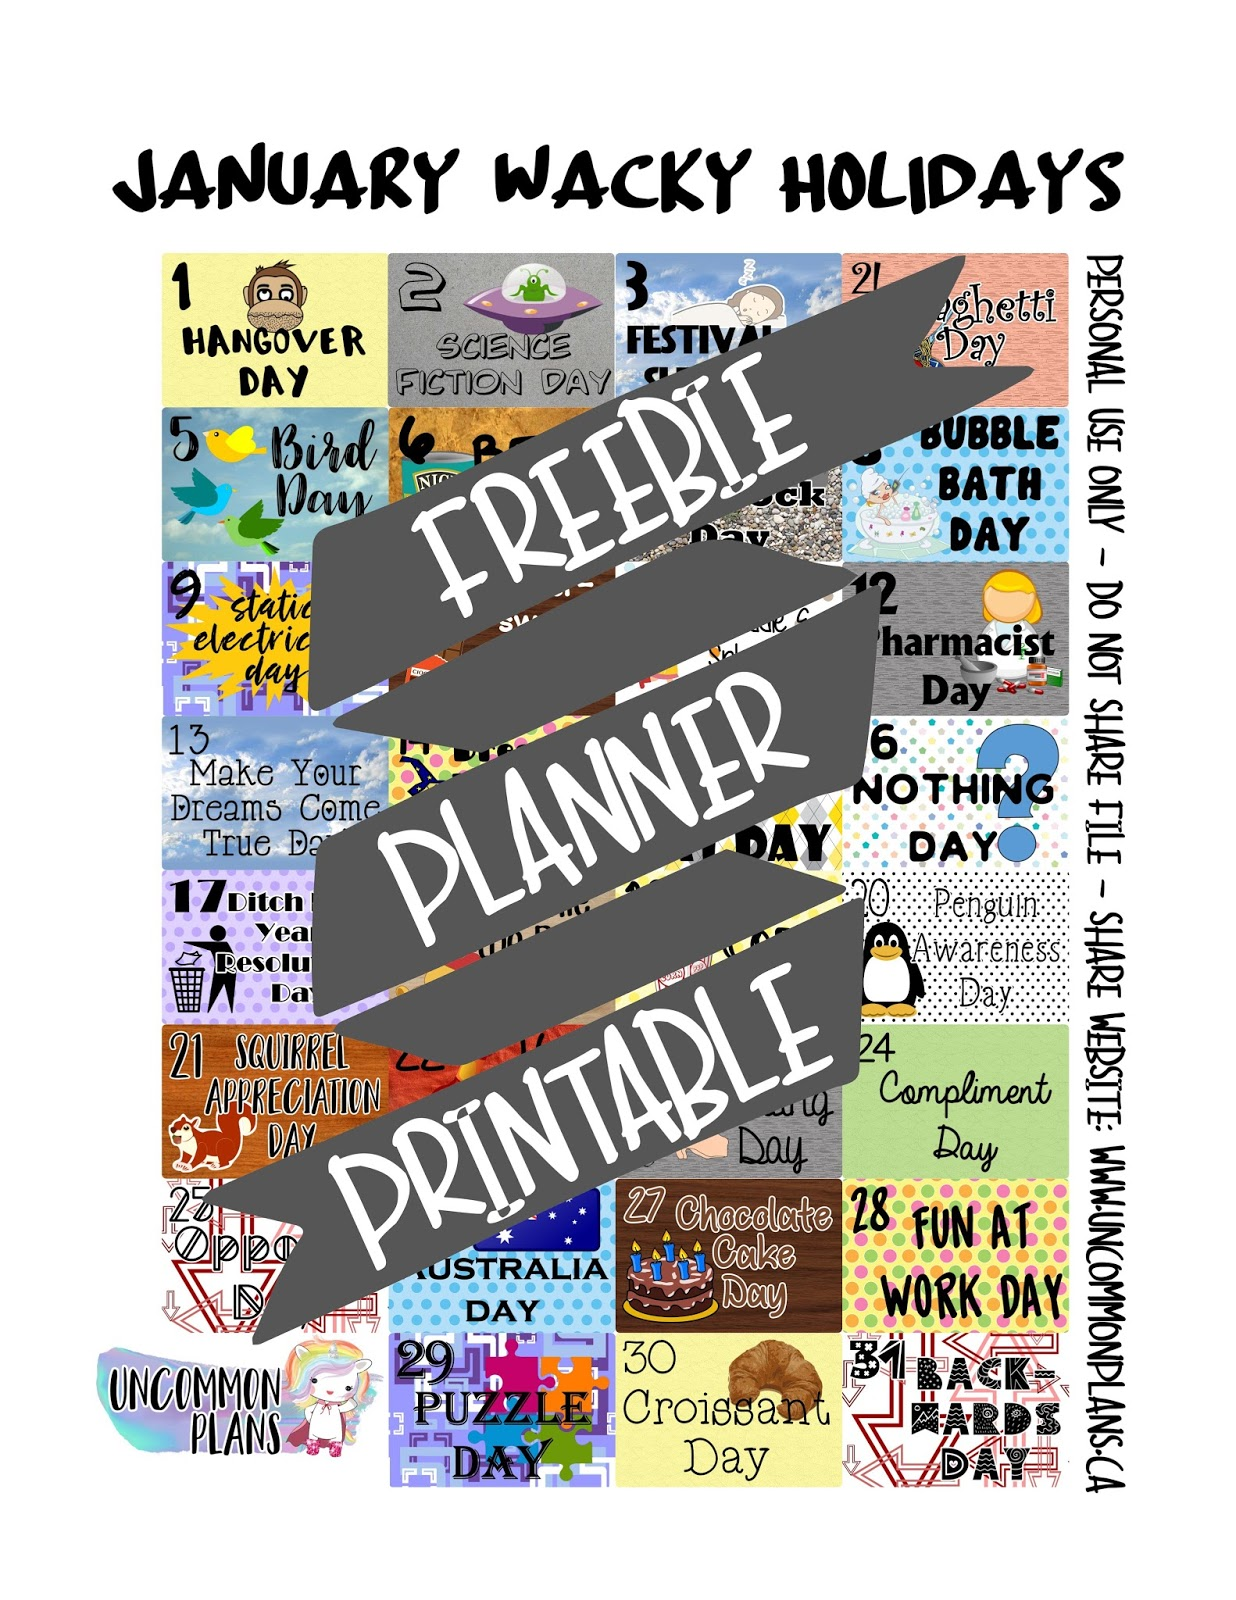 Uncommon Plans Free Planner Printable January Wacky Amp Fun Holidays